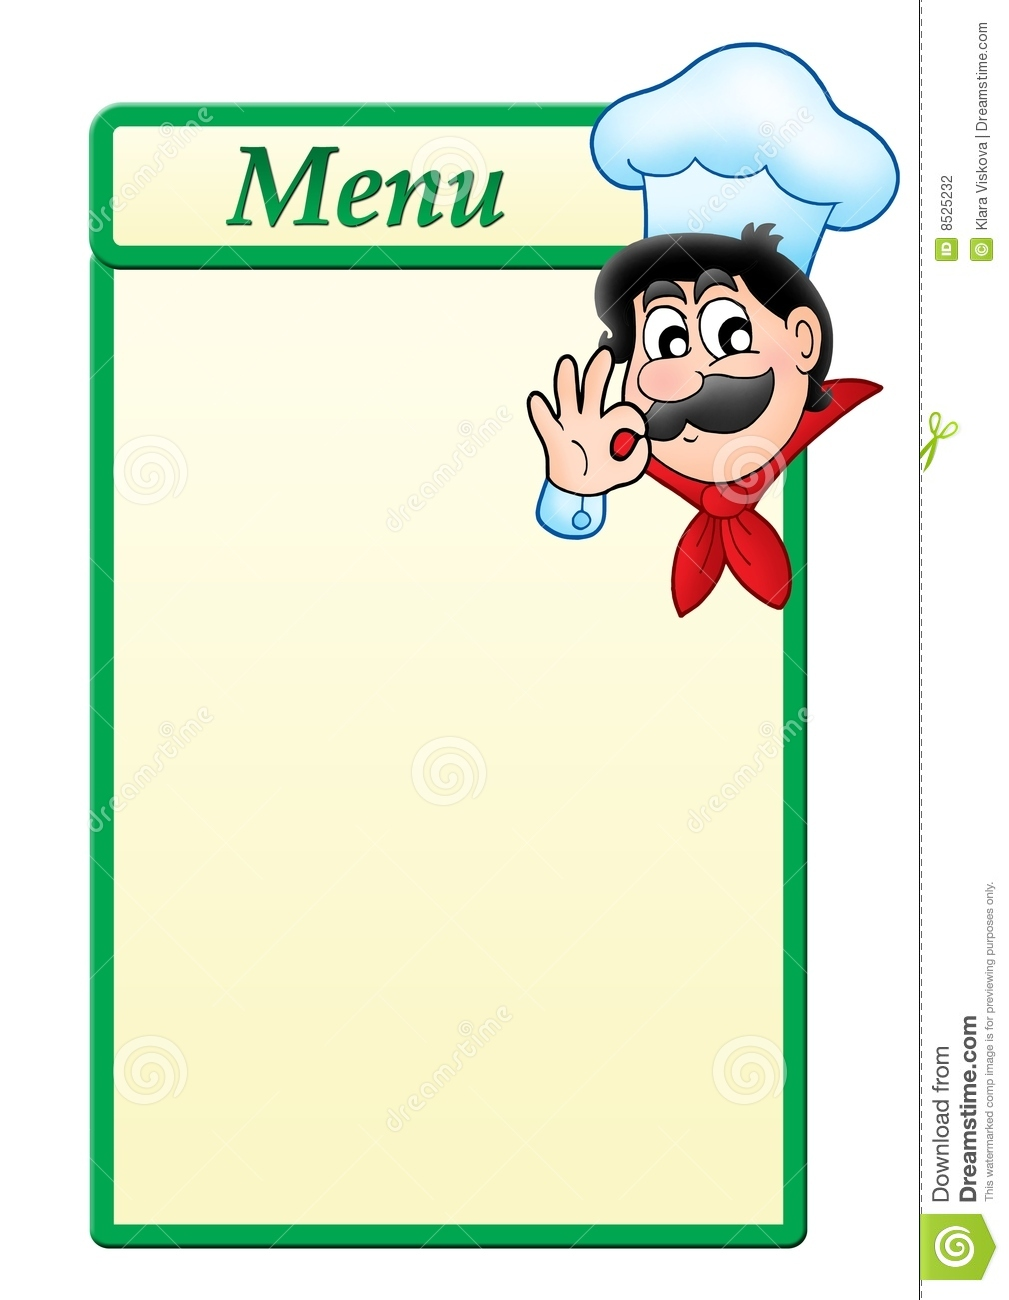 Menu Template With Cartoon Chef Stock Photography - Image: 8525232